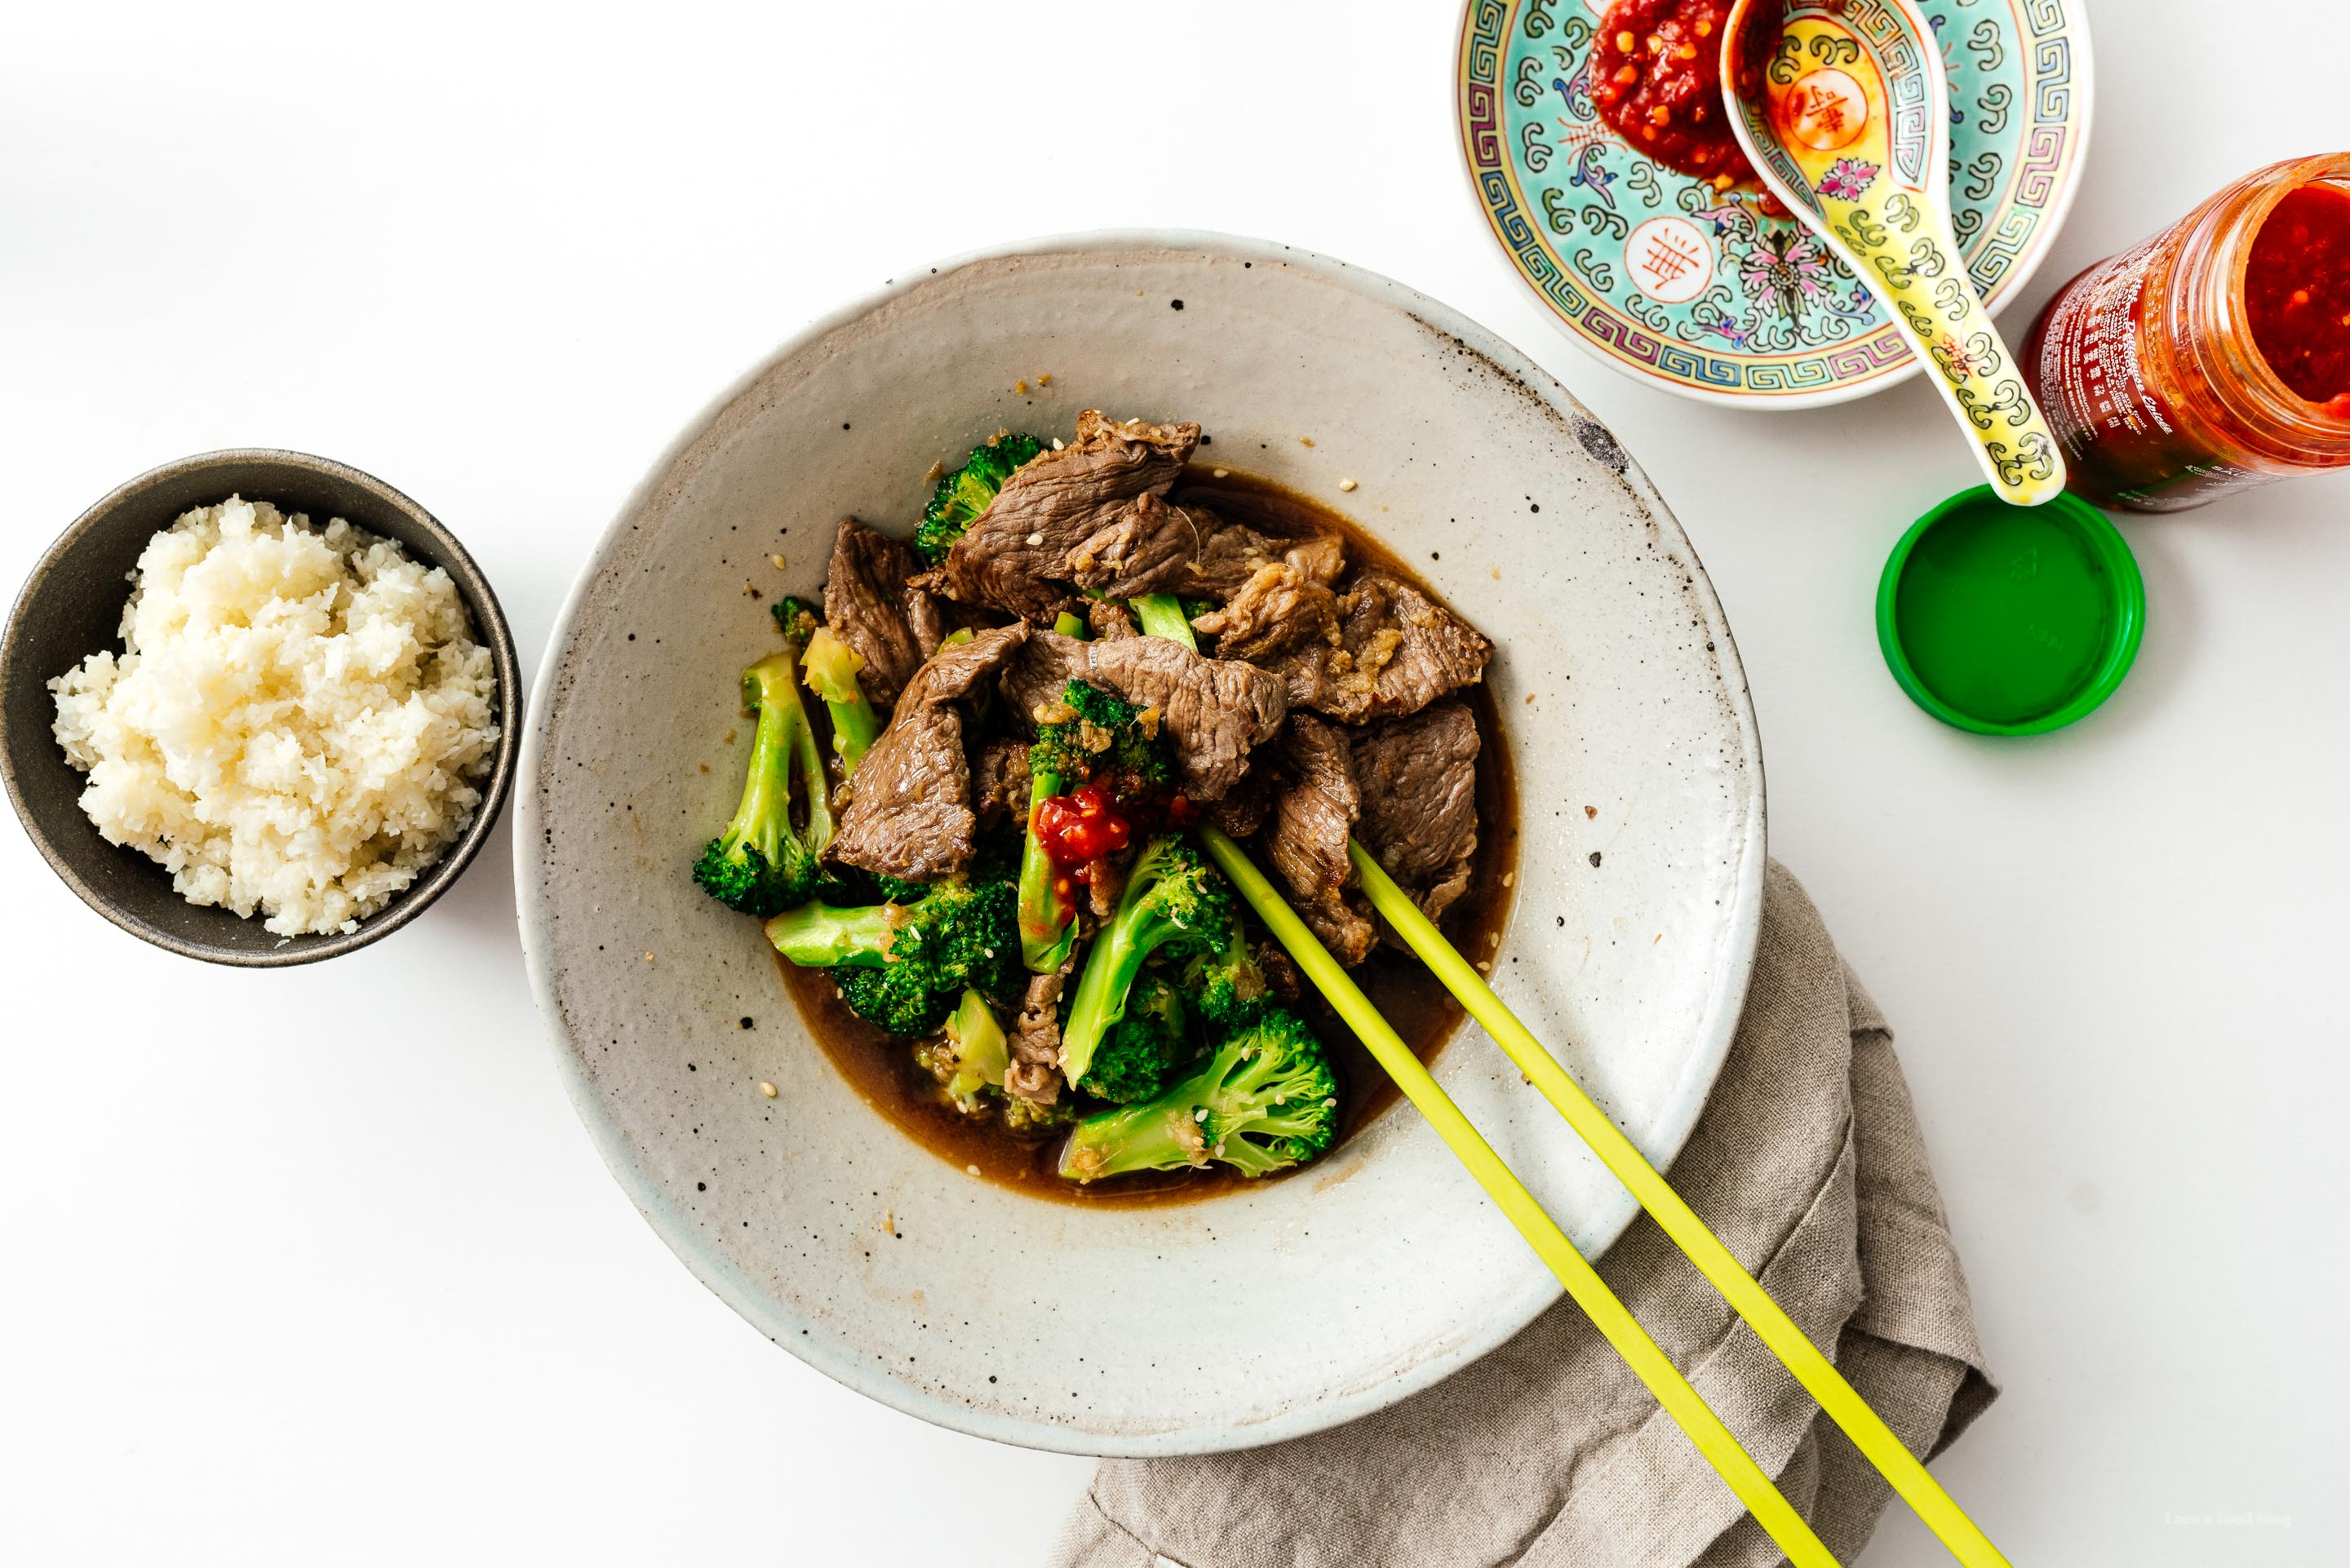 Beef and Broccoli Stir-Fry |  www.iamafoodblog.com